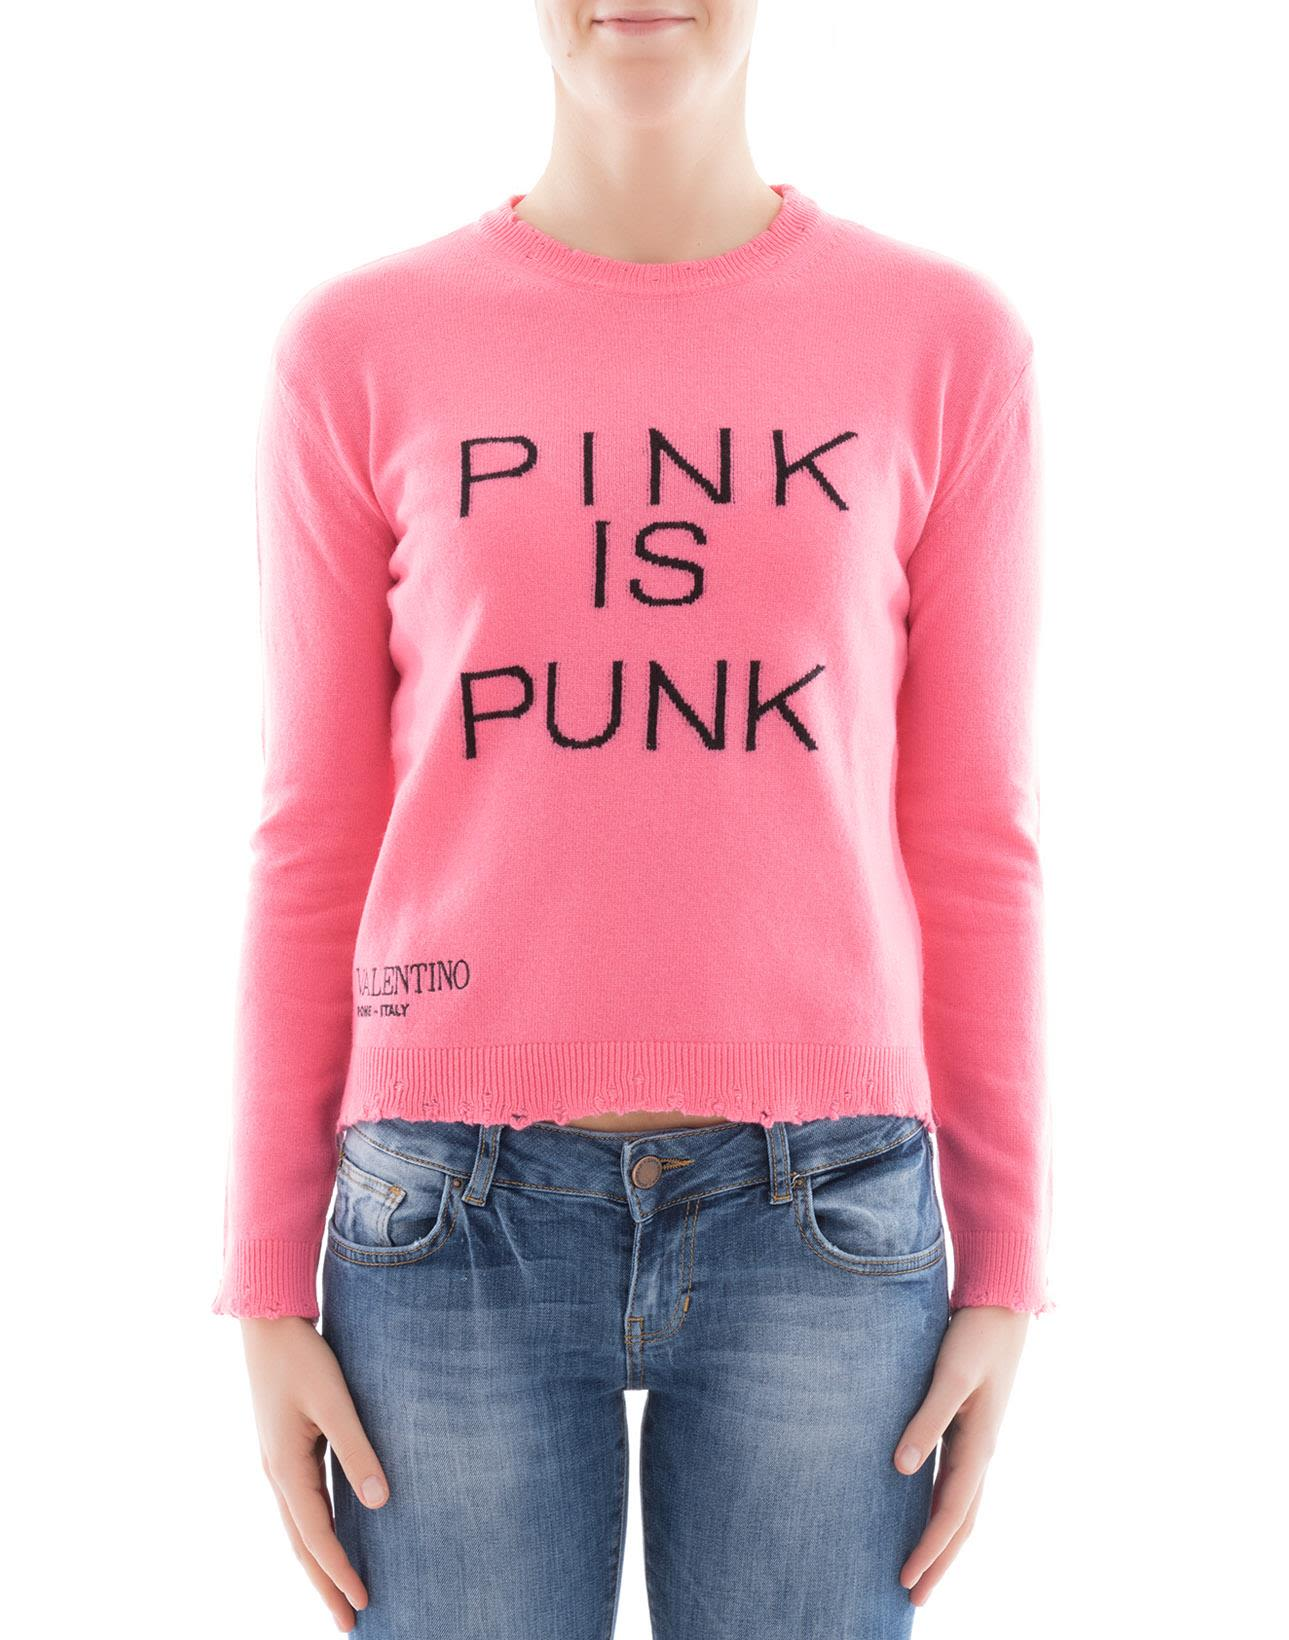 Pink Wool Sweatshirt